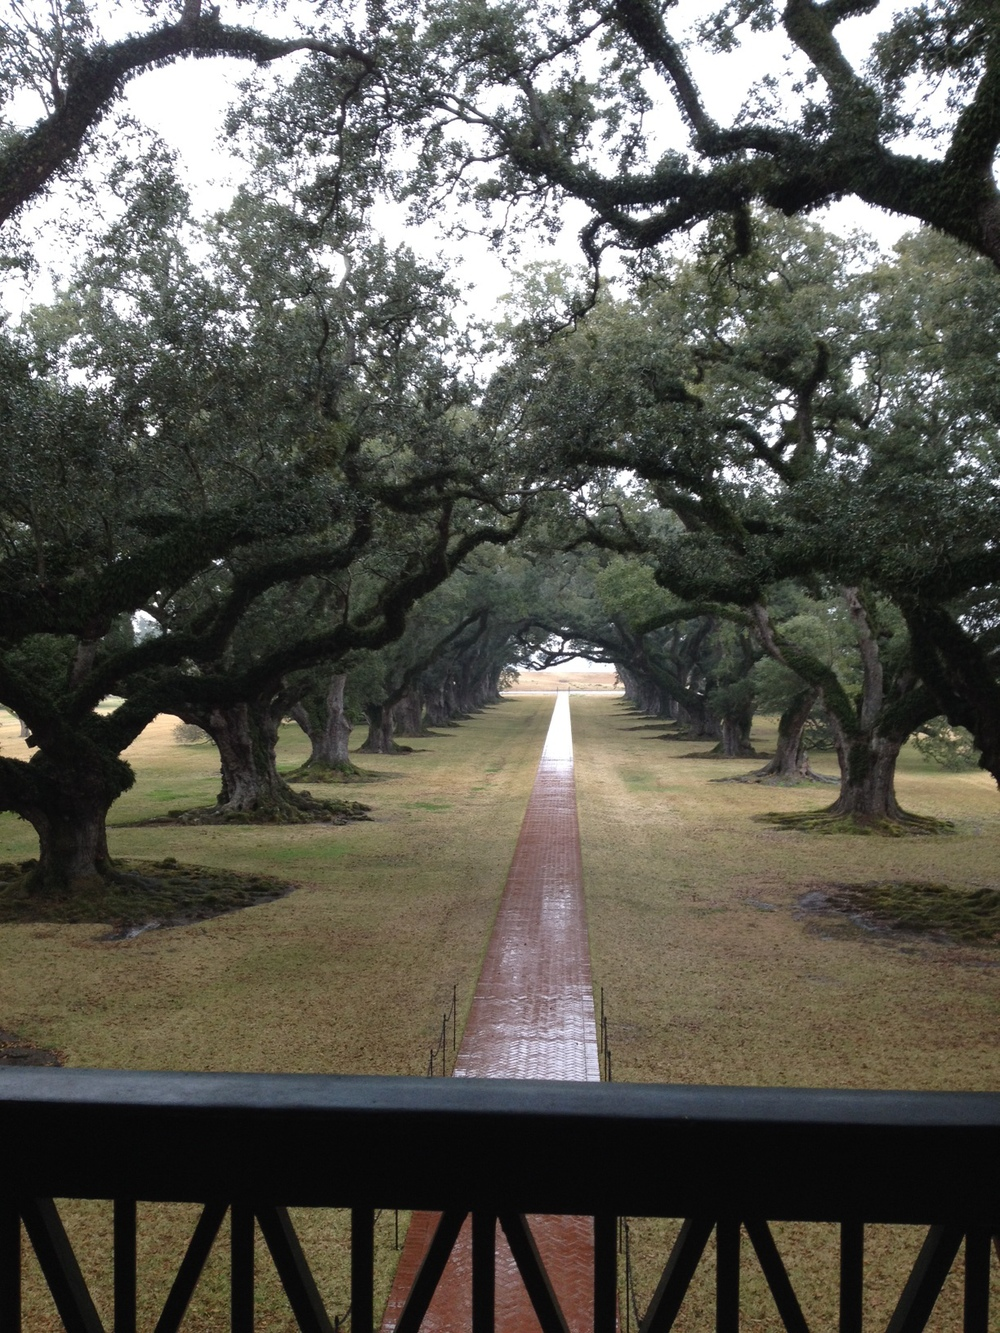 The view of Oak Alley's 300 year old trees from the second story of the plantation.